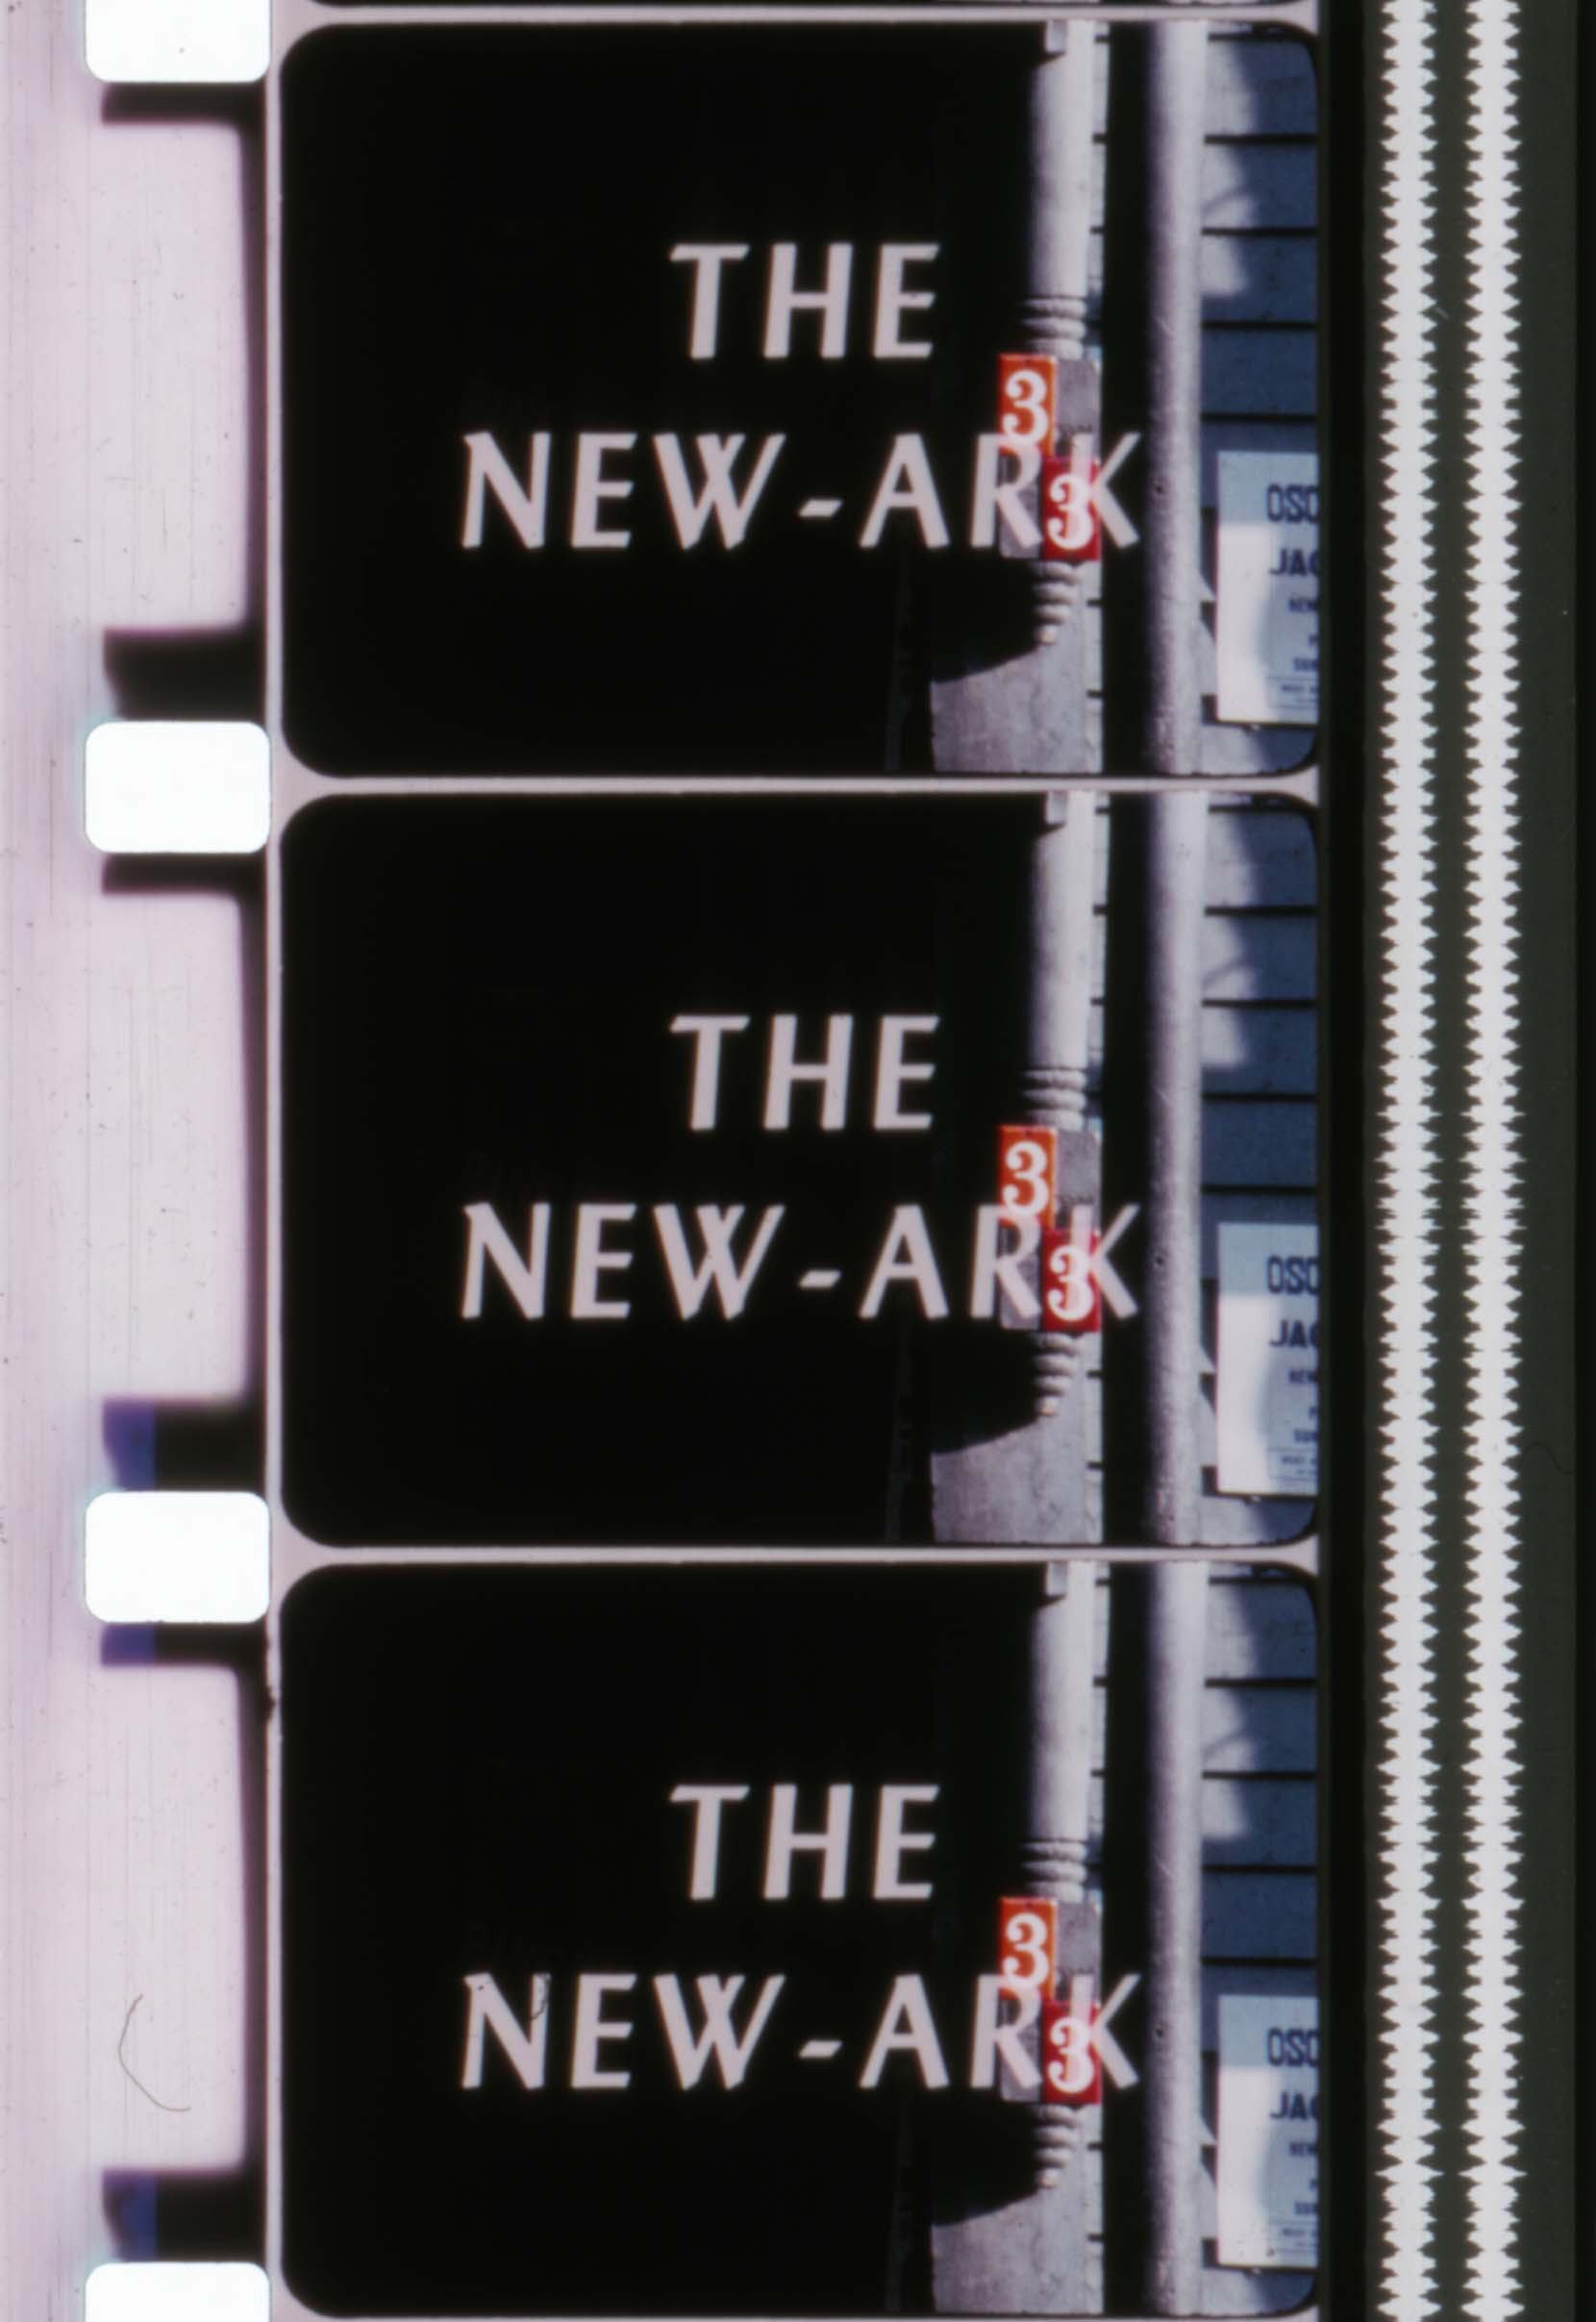 Negative from The New-Ark